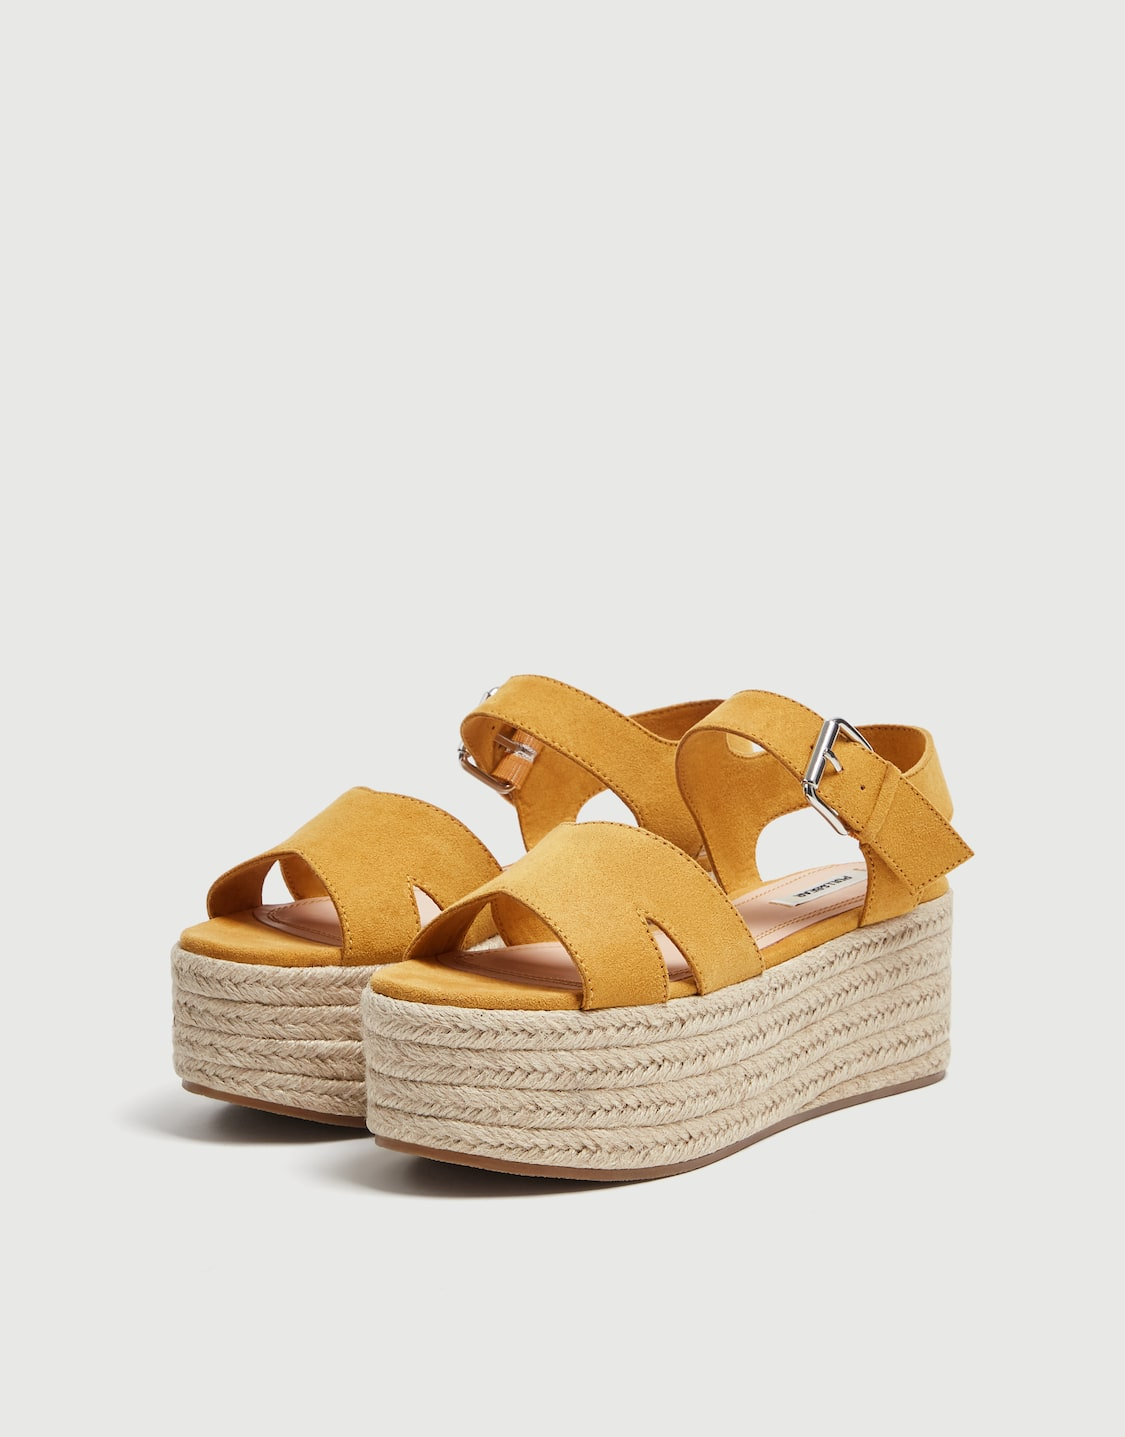 65db97f62d7 Mustard yellow platform wedges with straps - PULL BEAR